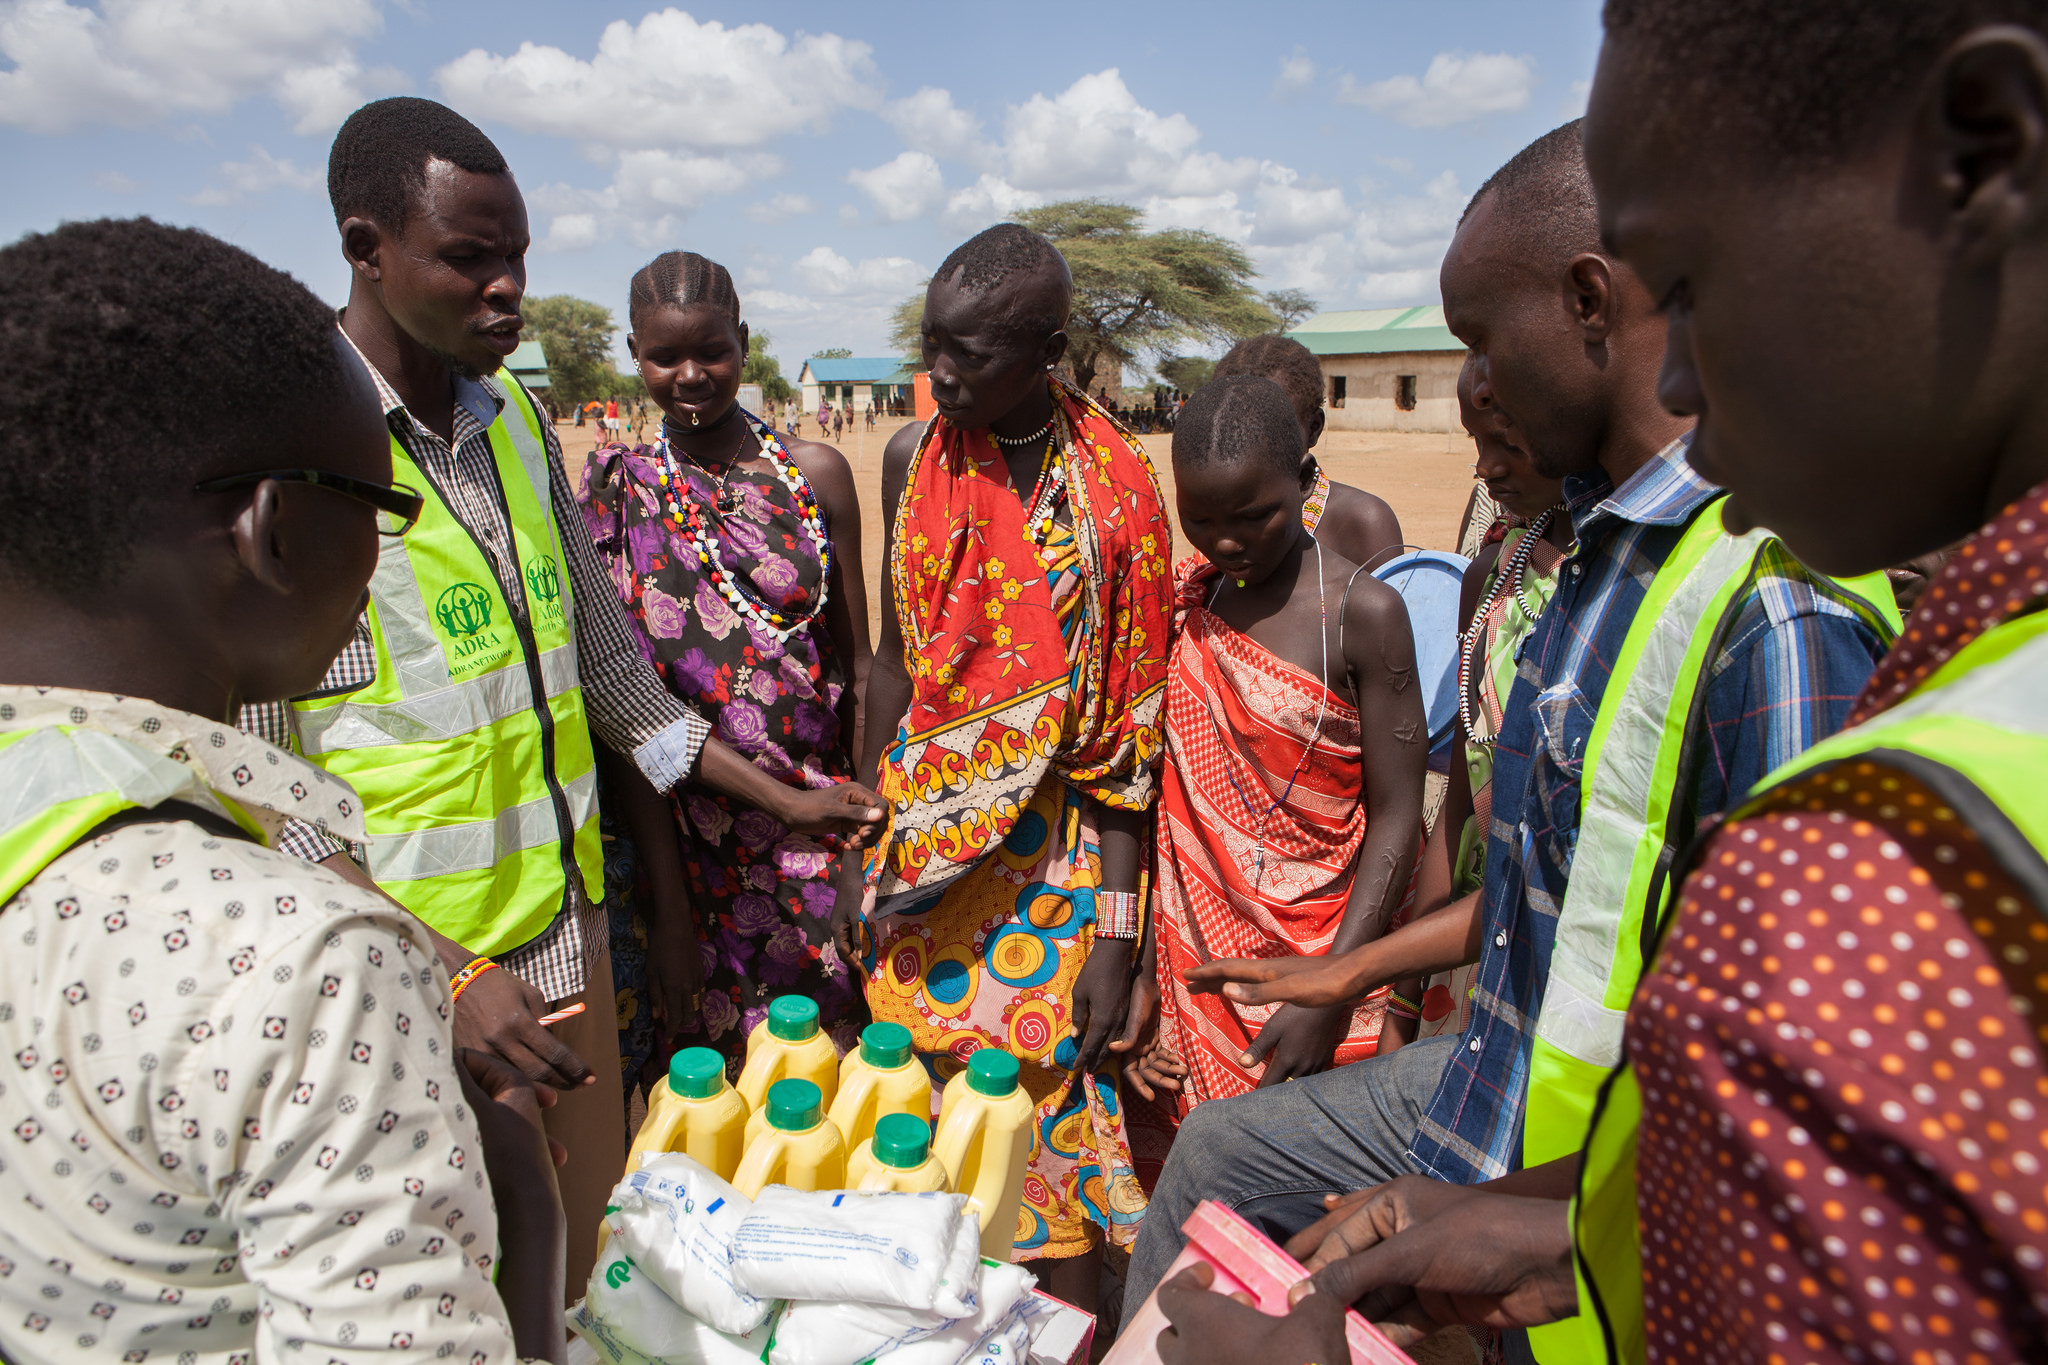 South Sudanese gather around at a food distribution project organized by ADRA South Sudan, funded in part by PWRDF.